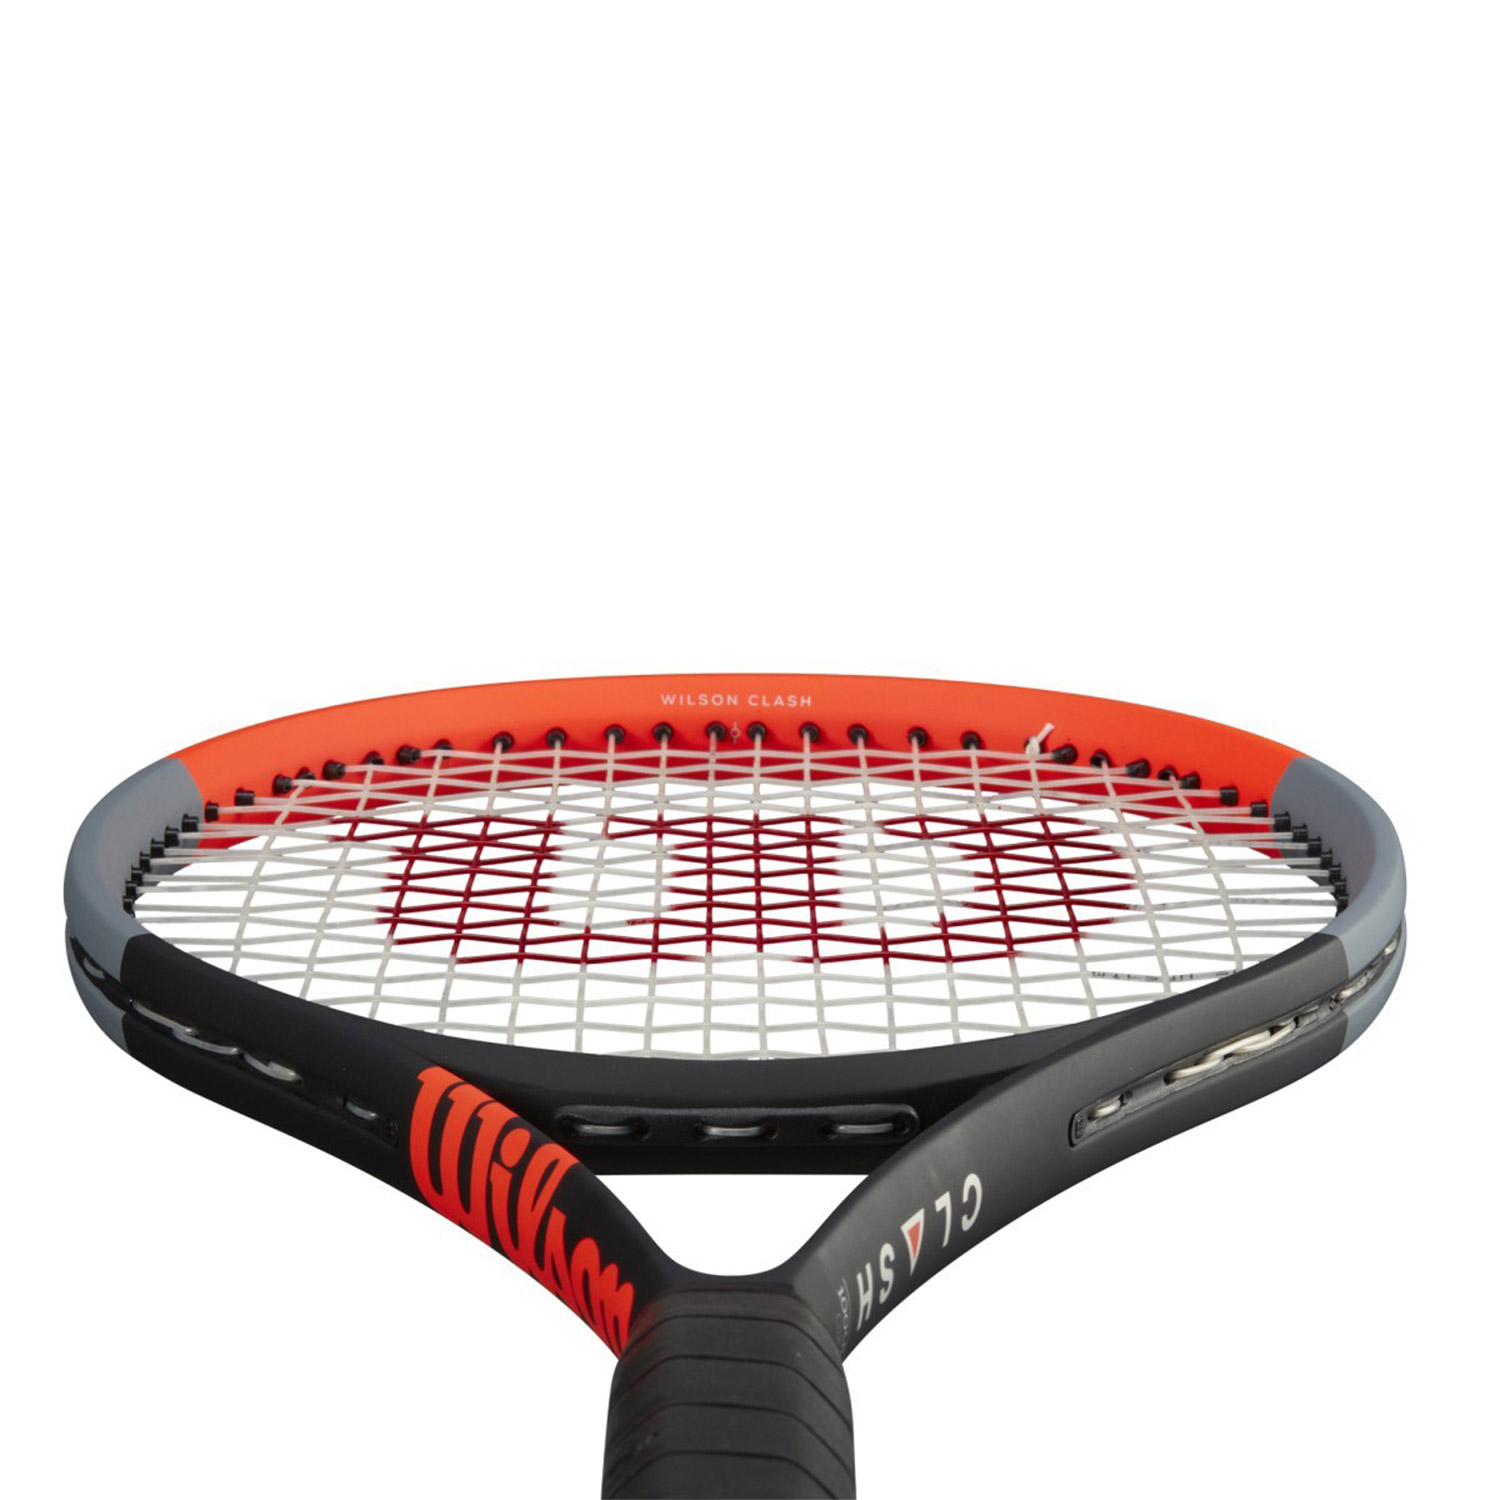 Теннисная ракетка Wilson CLASH 100 UL 2019 +мячи BABOLAT FRENCH OPEN ALL COURT*4. Фото ¹3